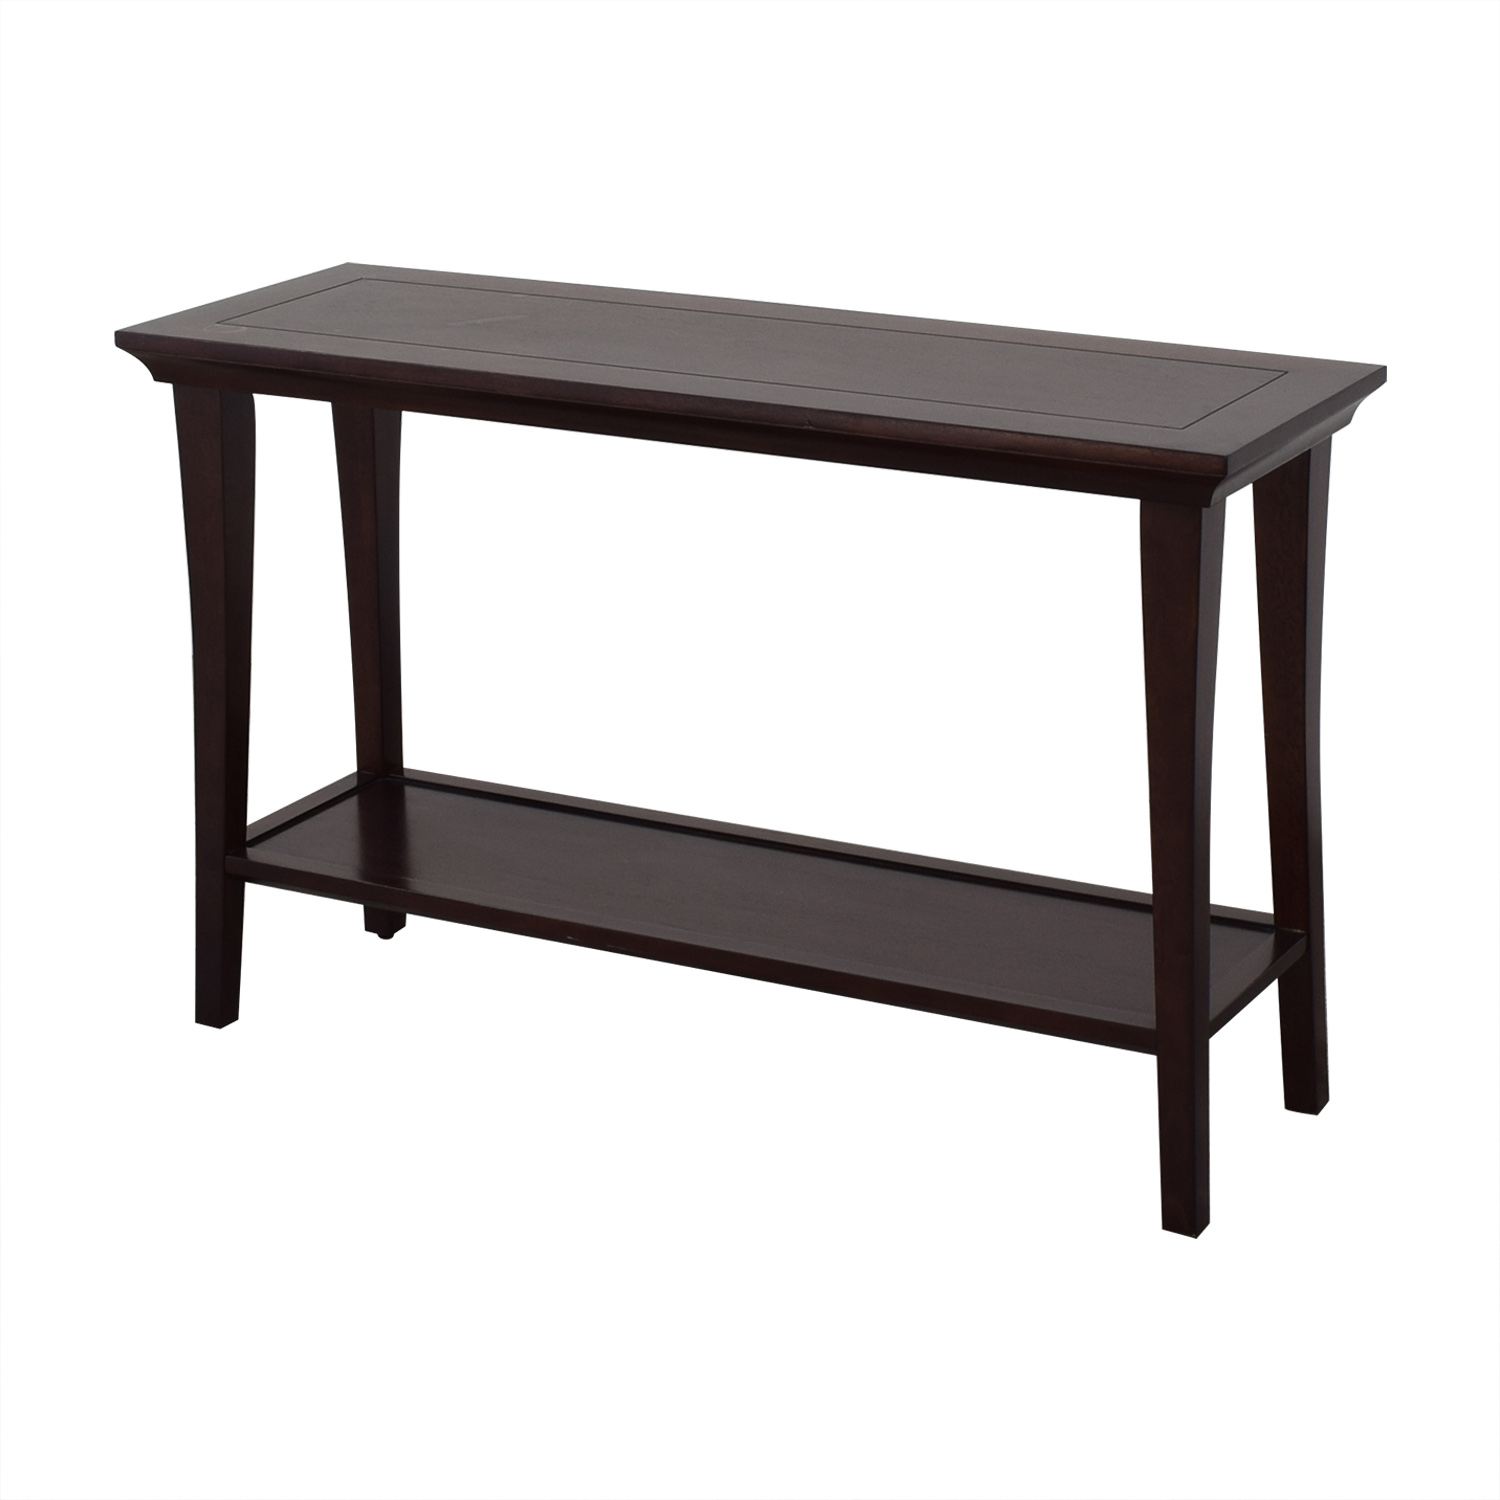 Pottery Barn Metropolitan Console Table / Accent Tables